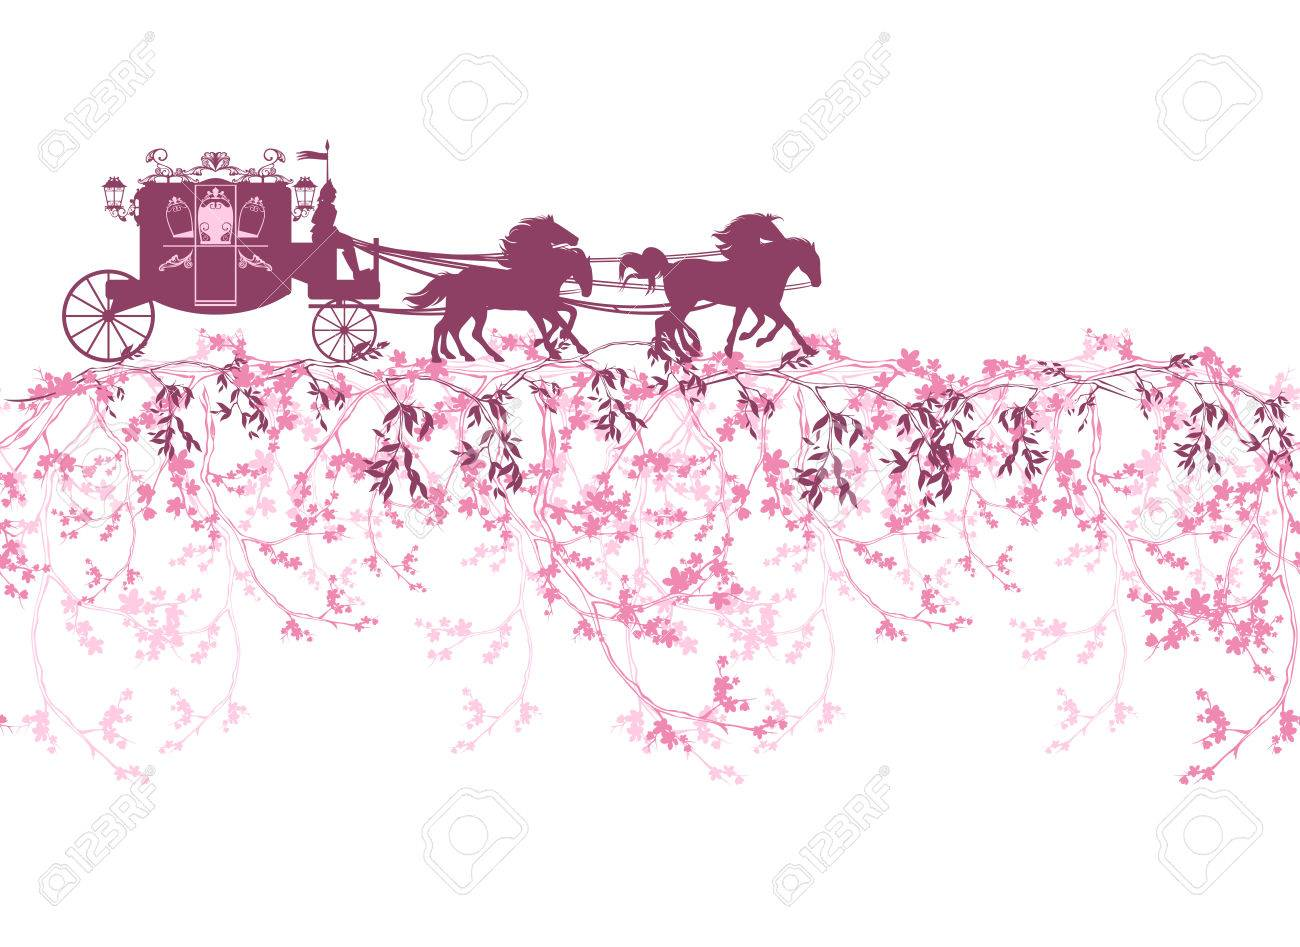 horizontally seamless border with blooming branches, flowers and a carriage - 53276156